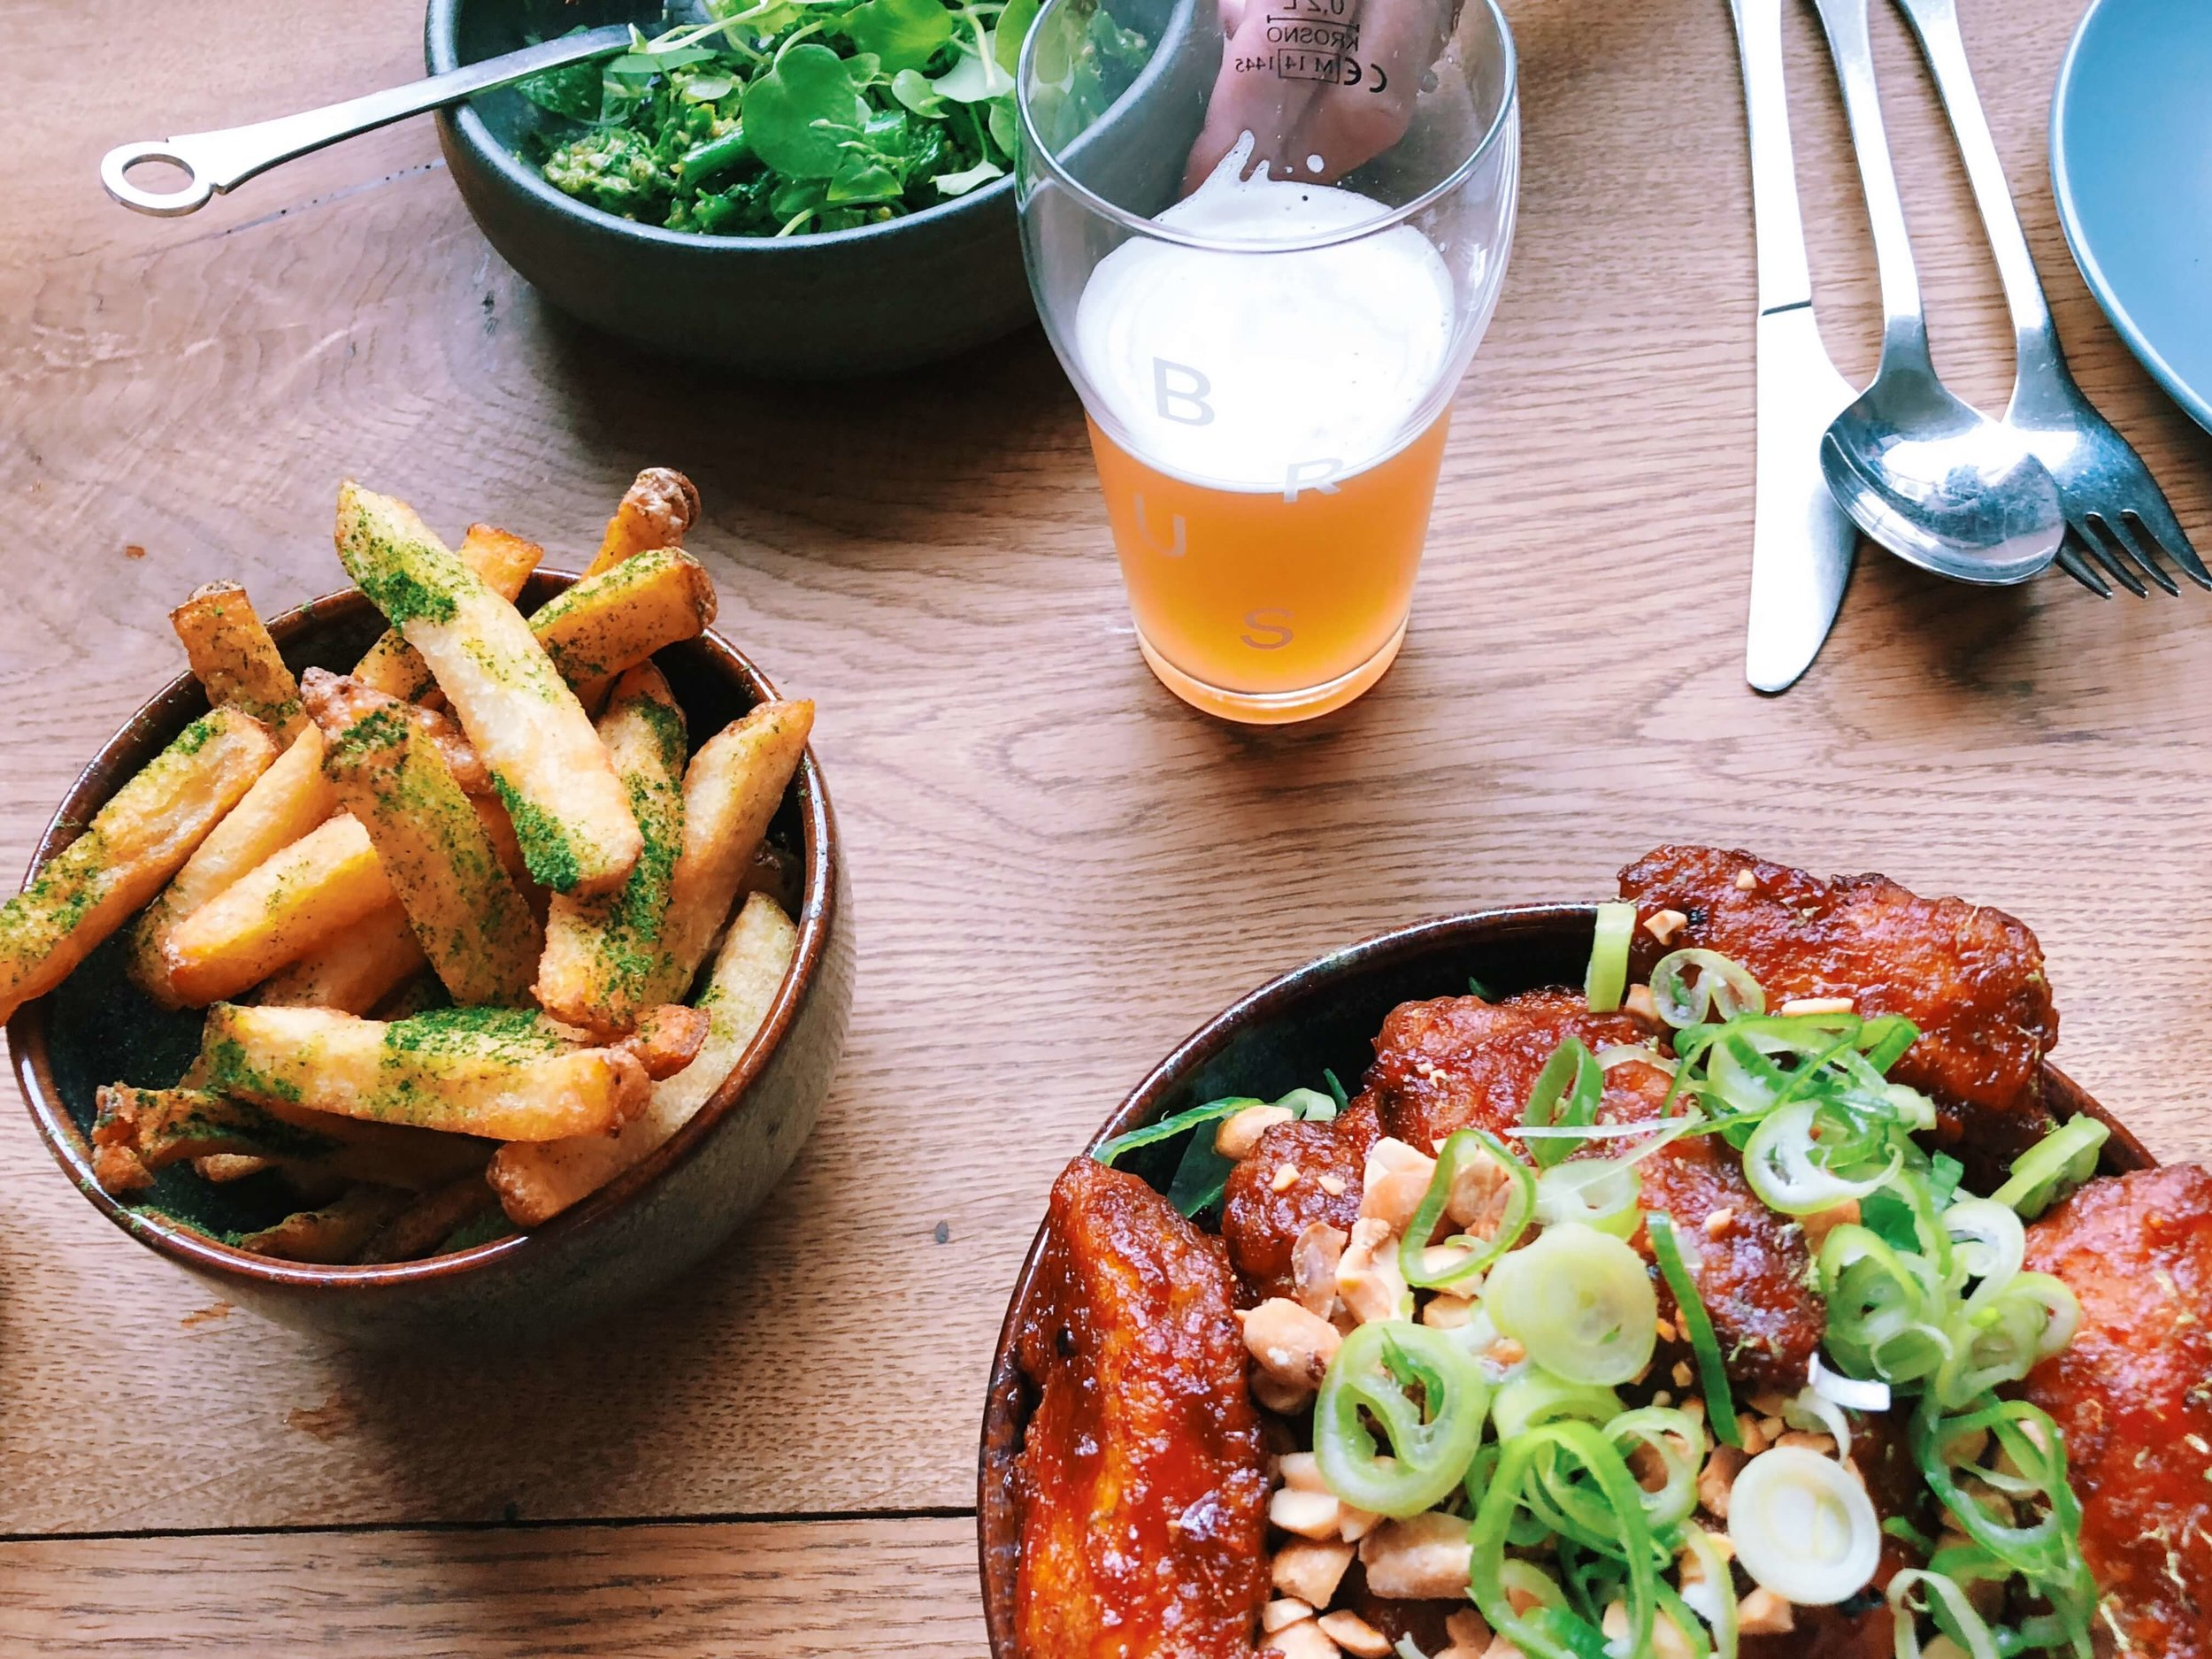 Broccoli, fermented fries, and Korean chicken at Brus